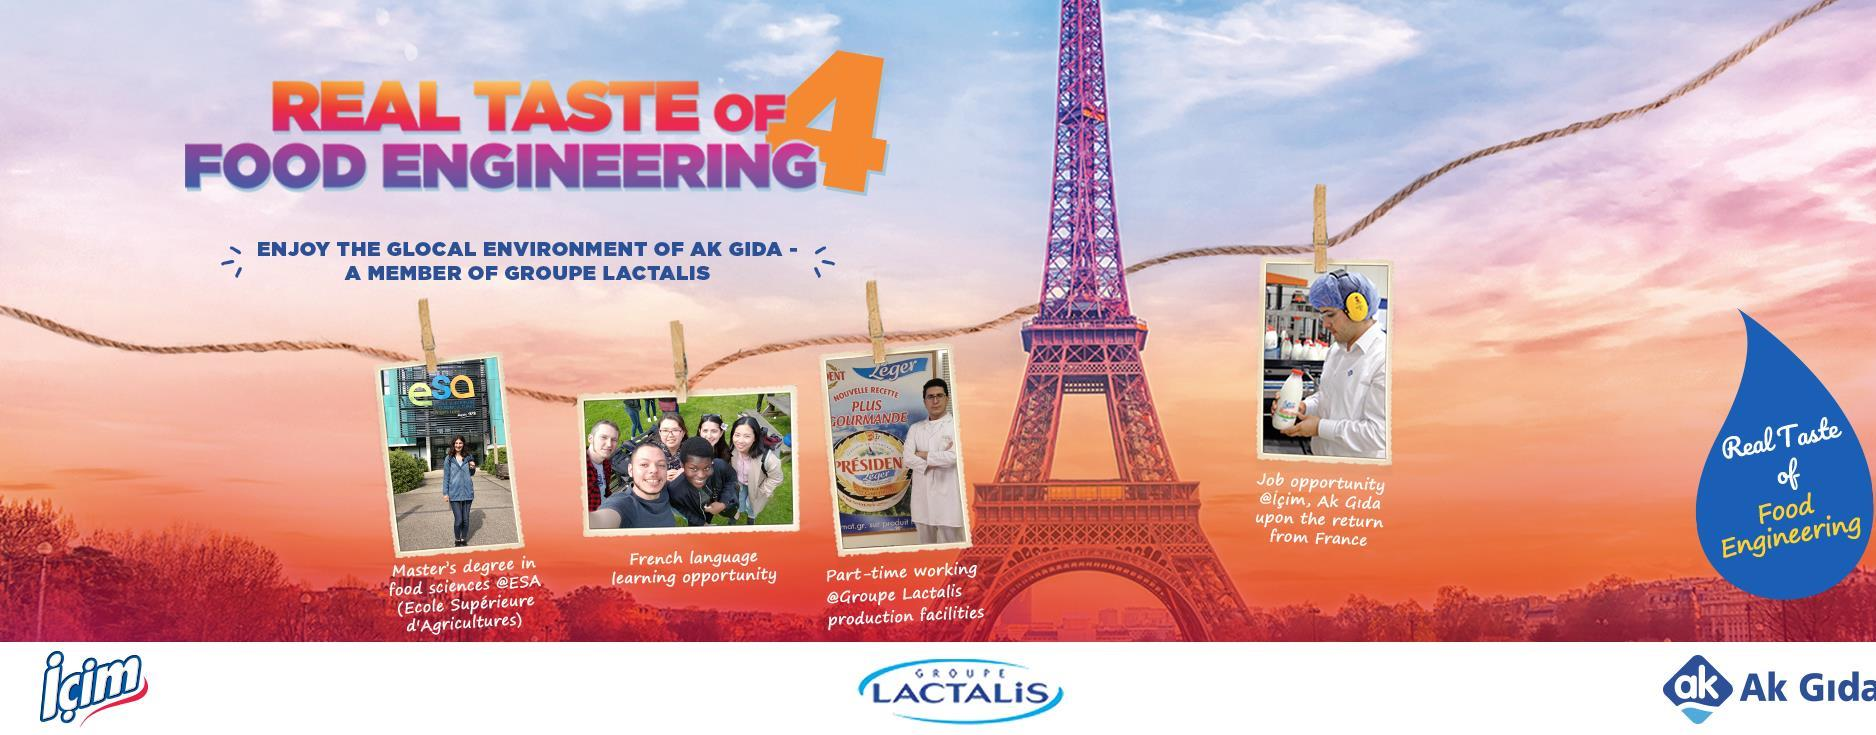 START YOUR ENGINEERING CAREER IN FRANCE